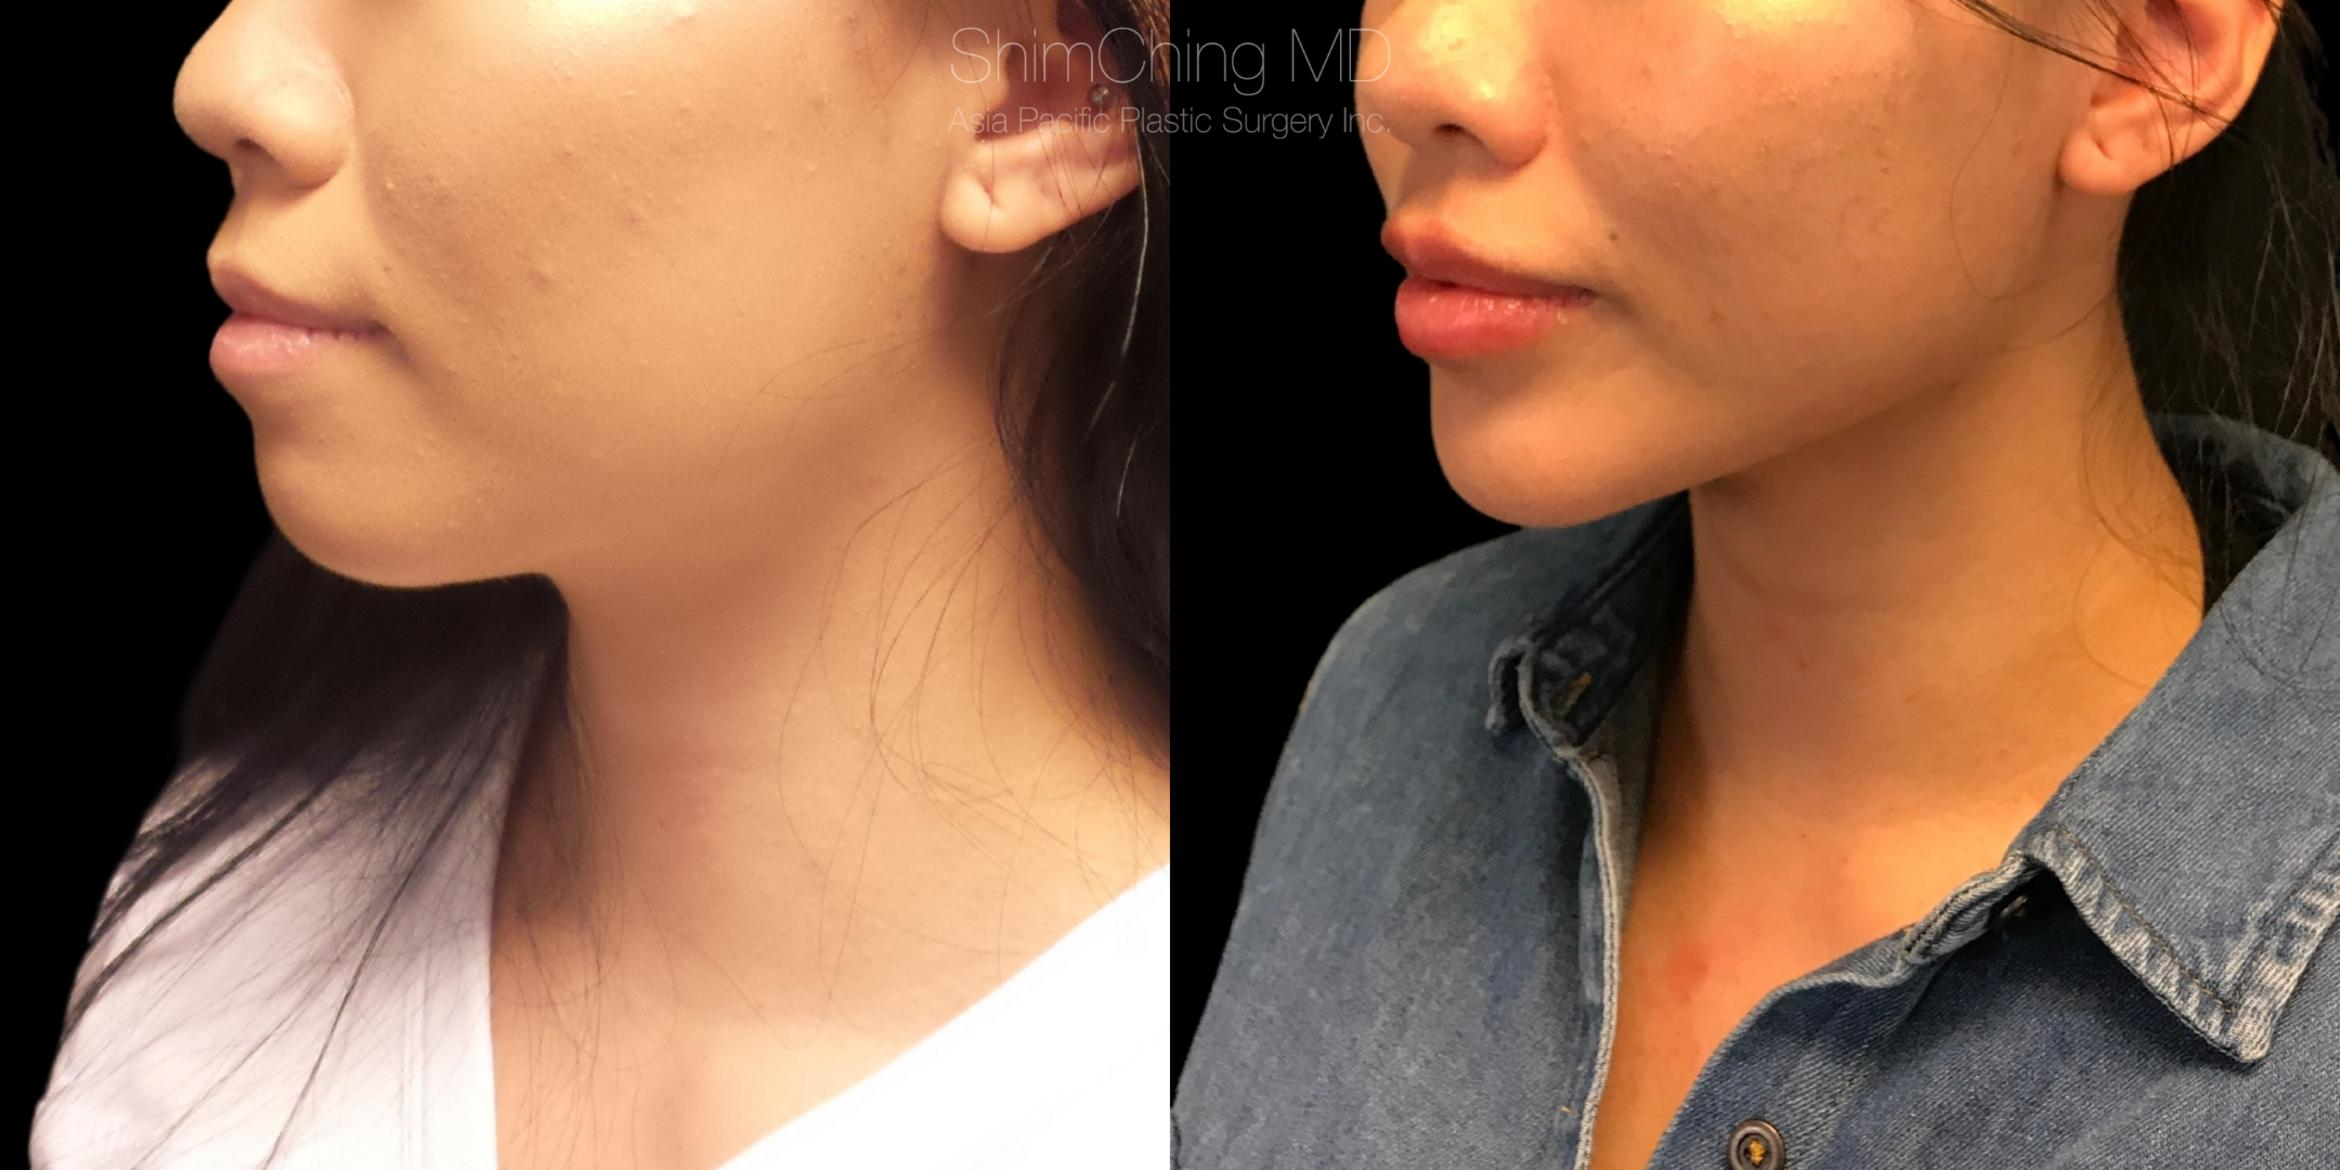 Chin Case 319 Before & After Right Oblique | Honolulu, HI | Shim Ching, MD: Asia Pacific Plastic Surgery